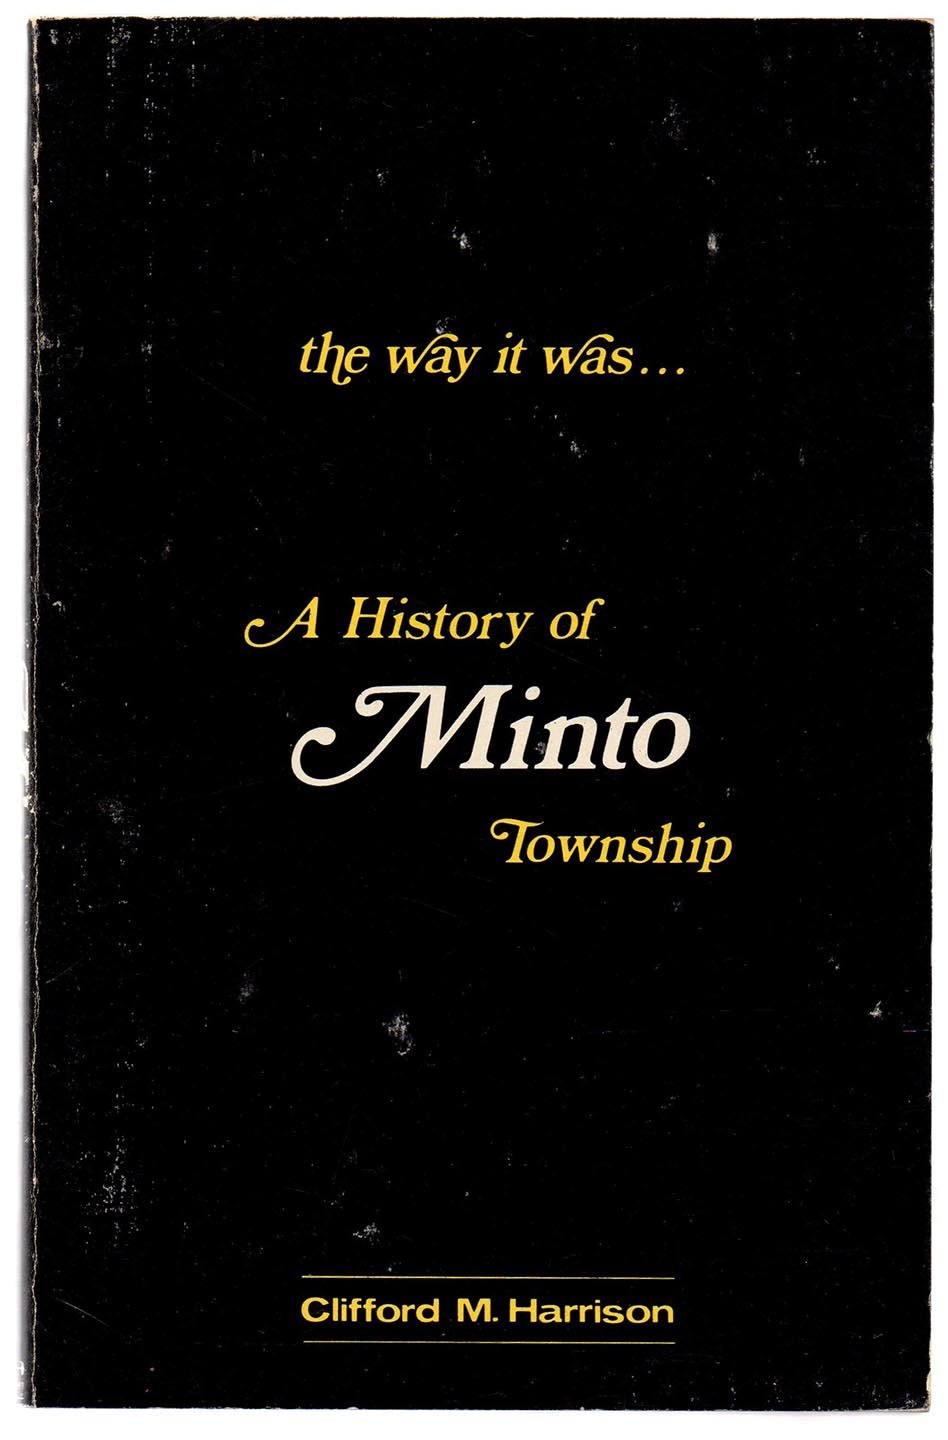 the way it was...A History of Minto Township